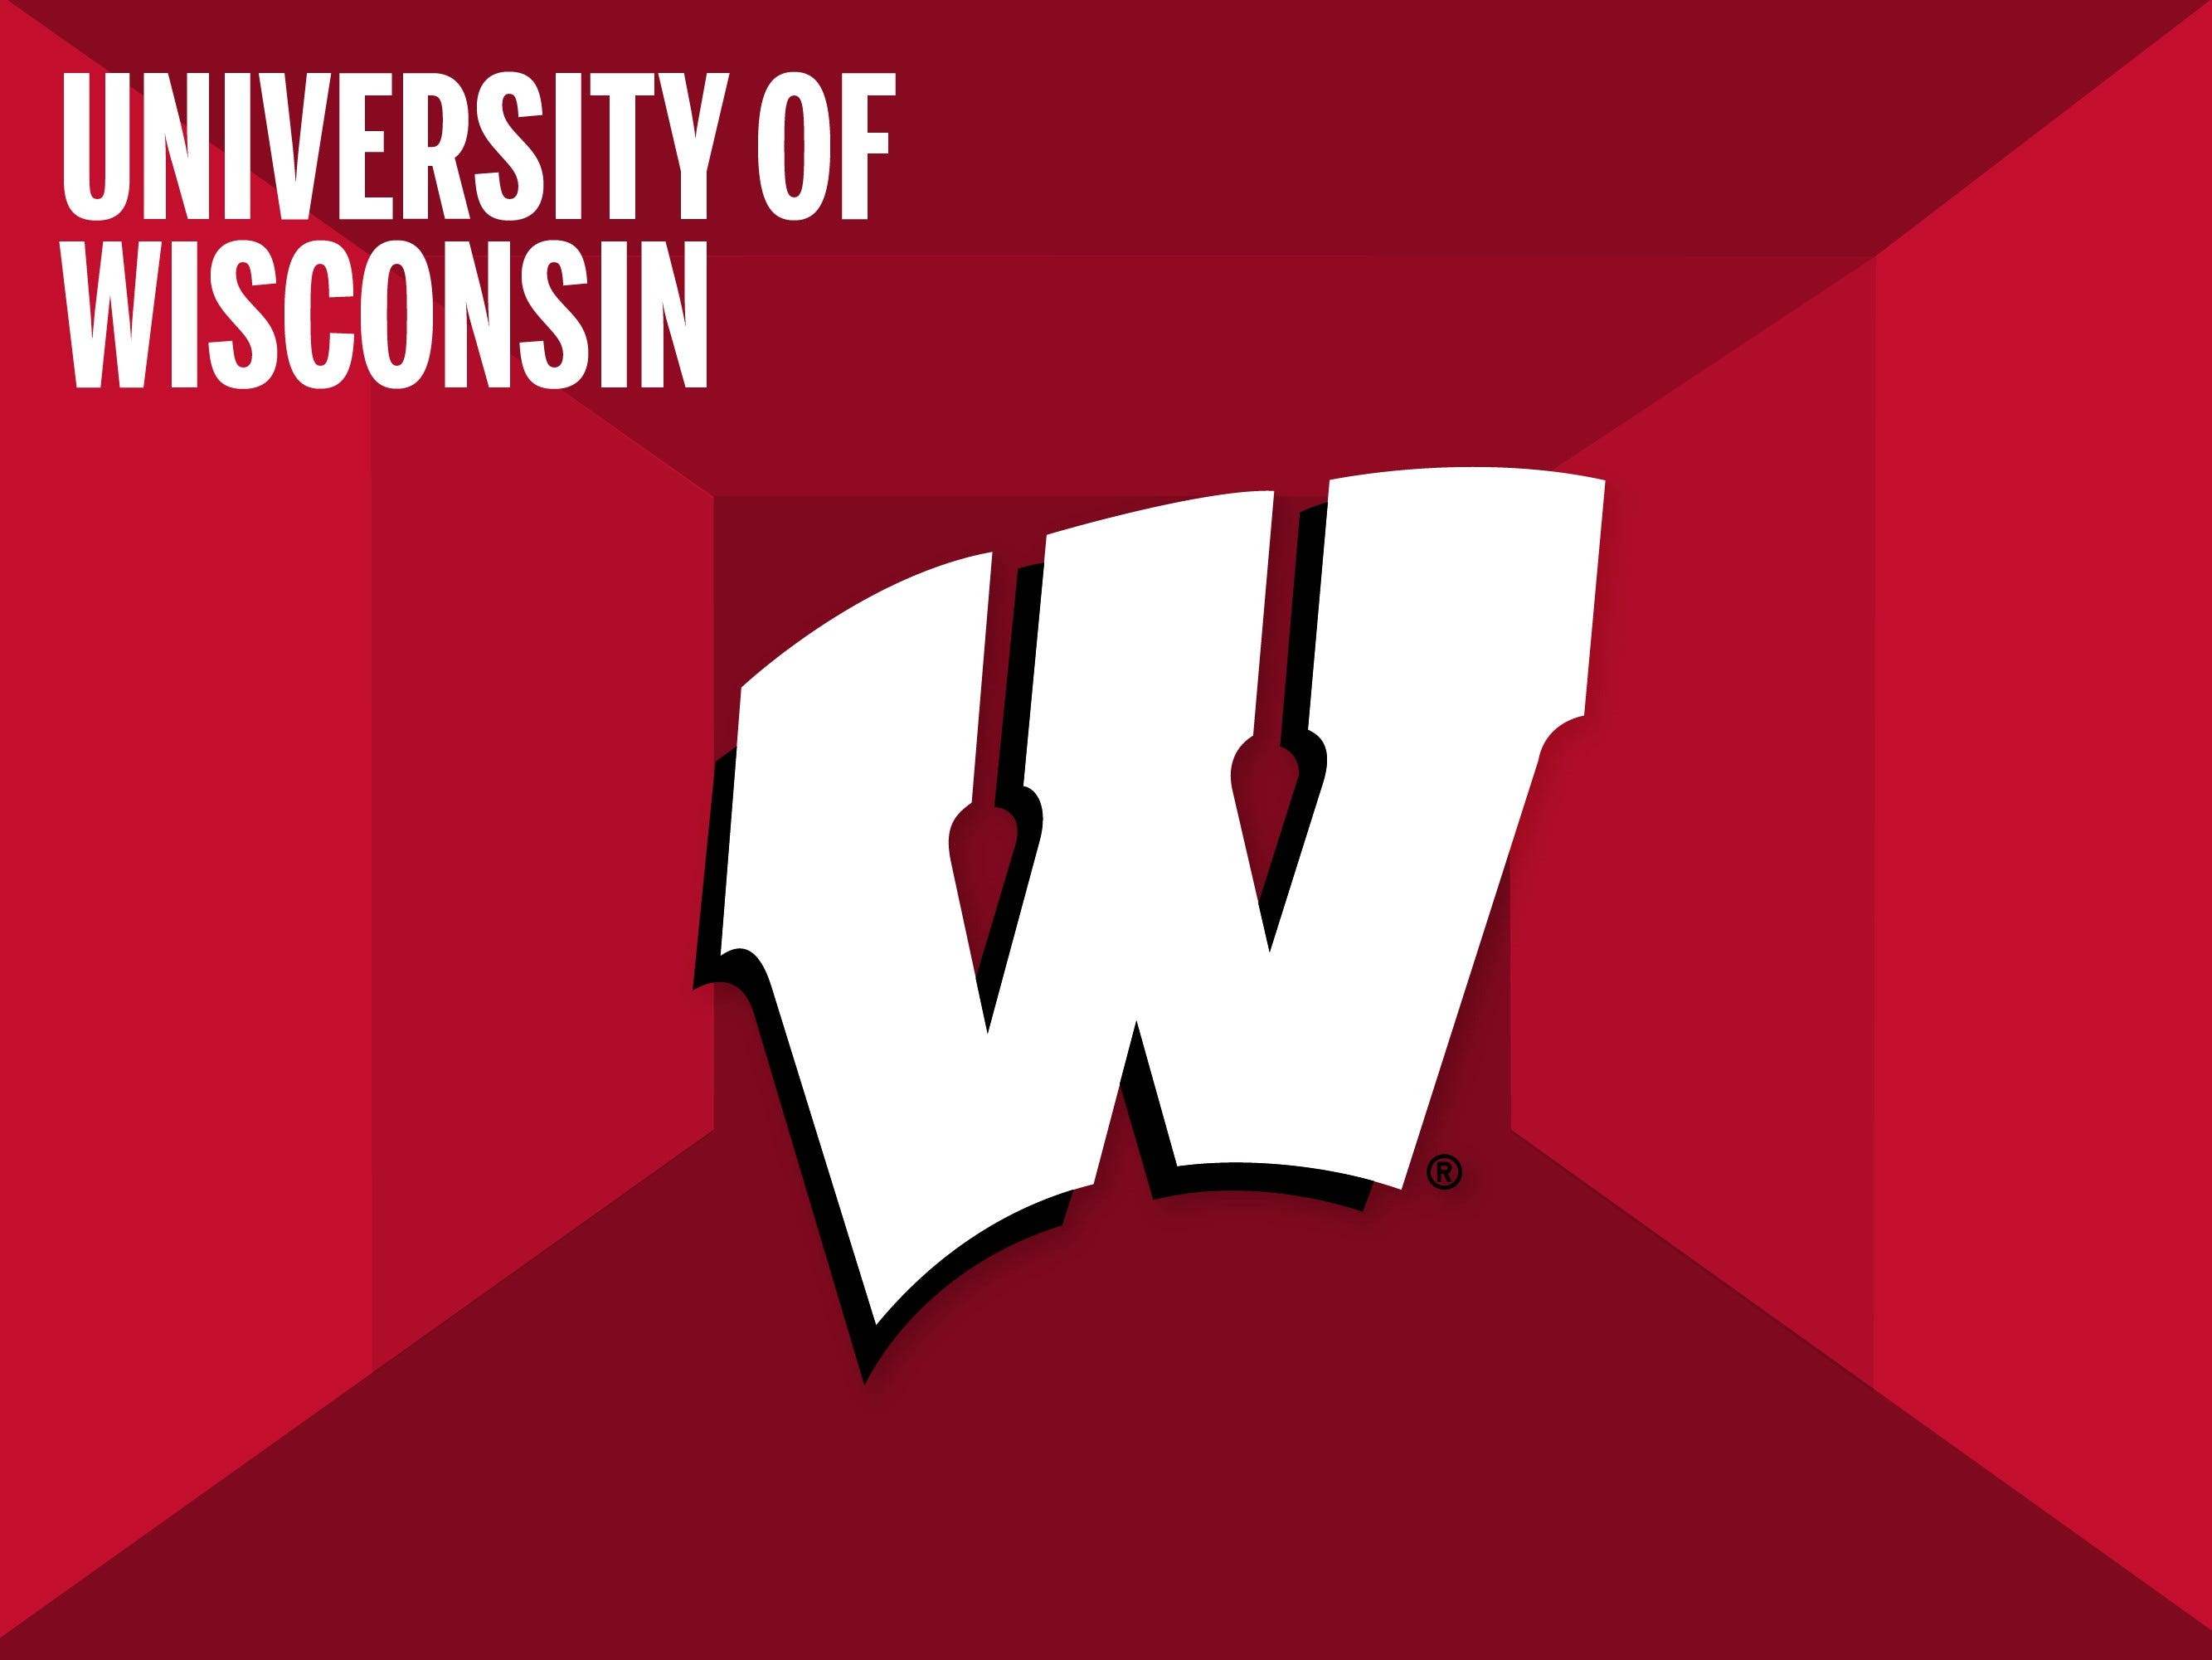 University of Wisconsin College Football Shop